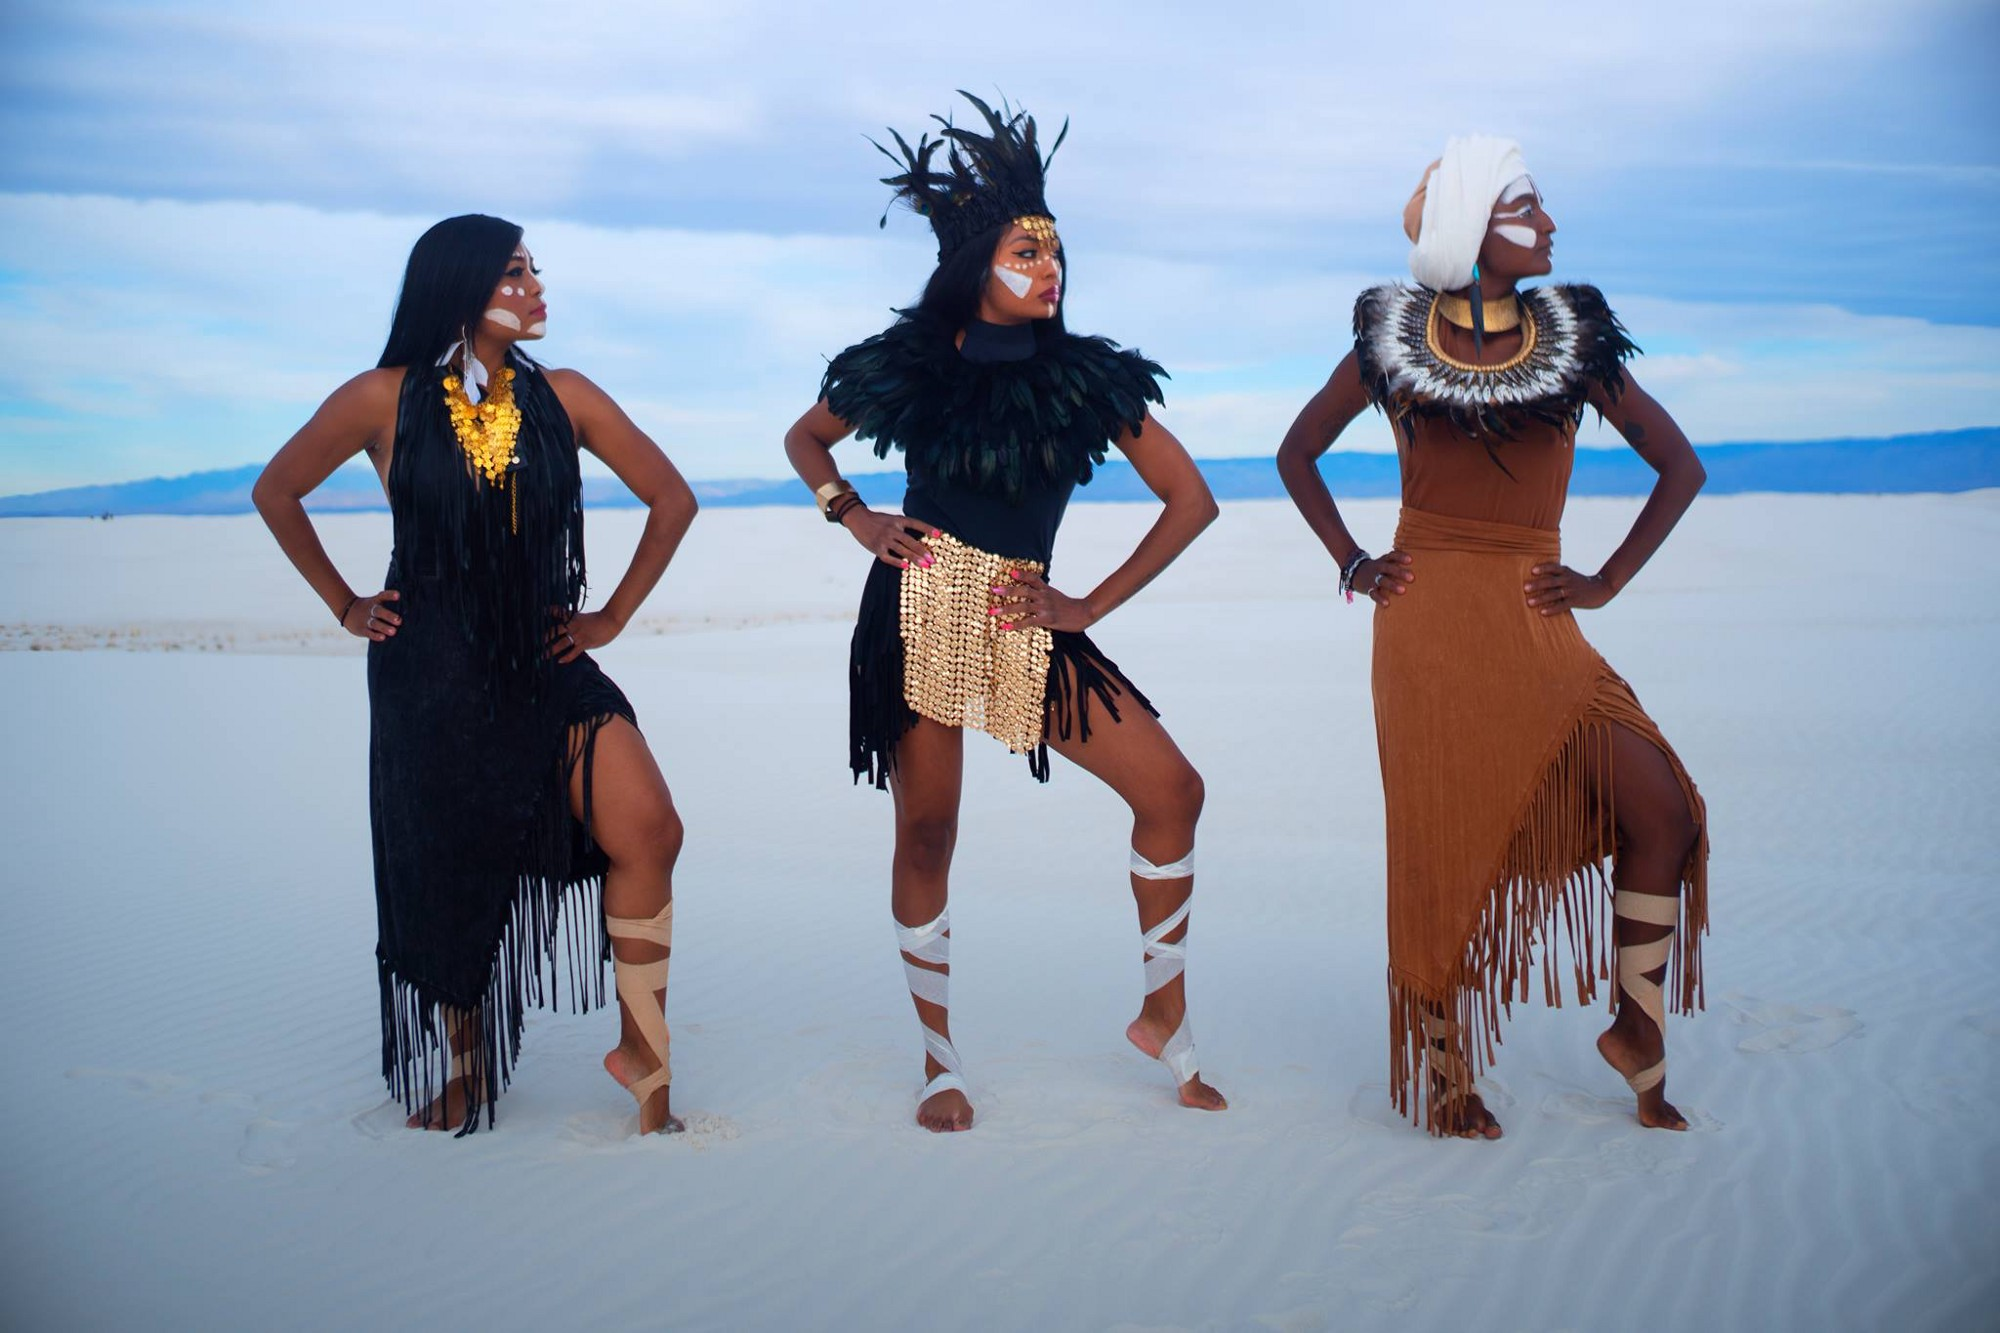 The three sisters pose in a glamorous mix of fringe, feathers, and gold jewelry with sand dunes and distant mountains behind them.